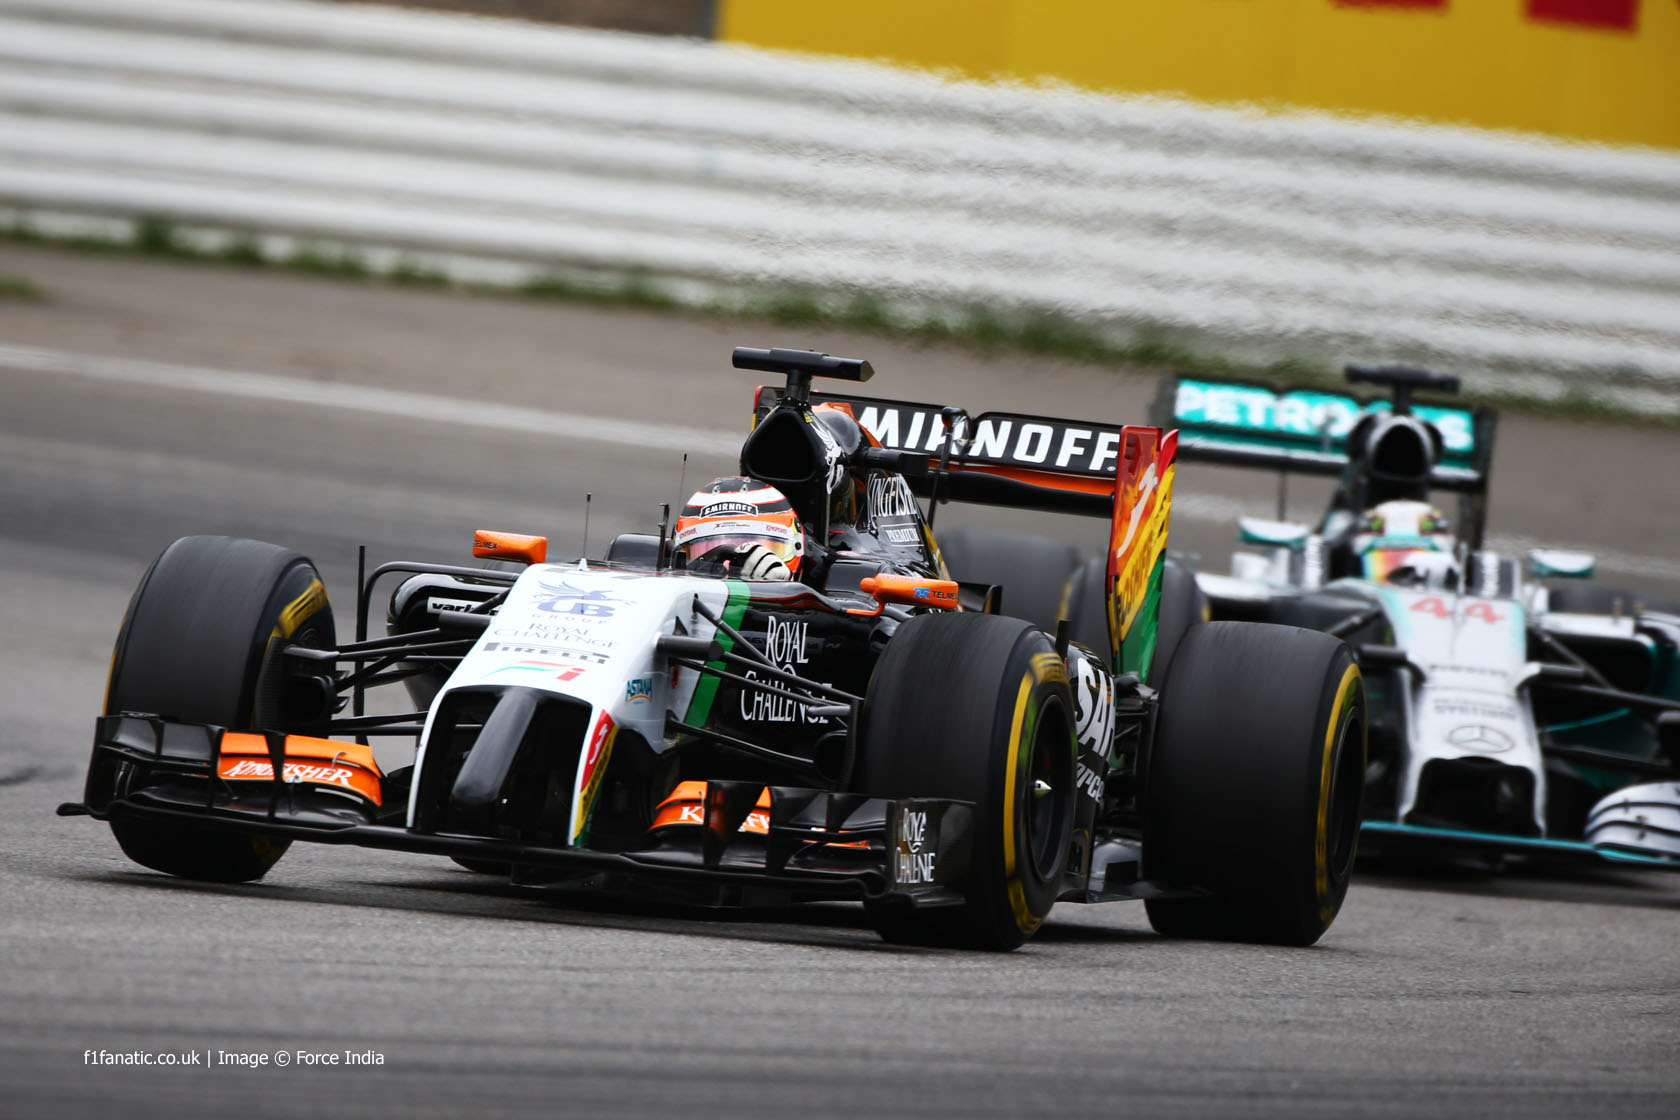 Nico Hulkenberg, Force India, Hockenheimring, 2014